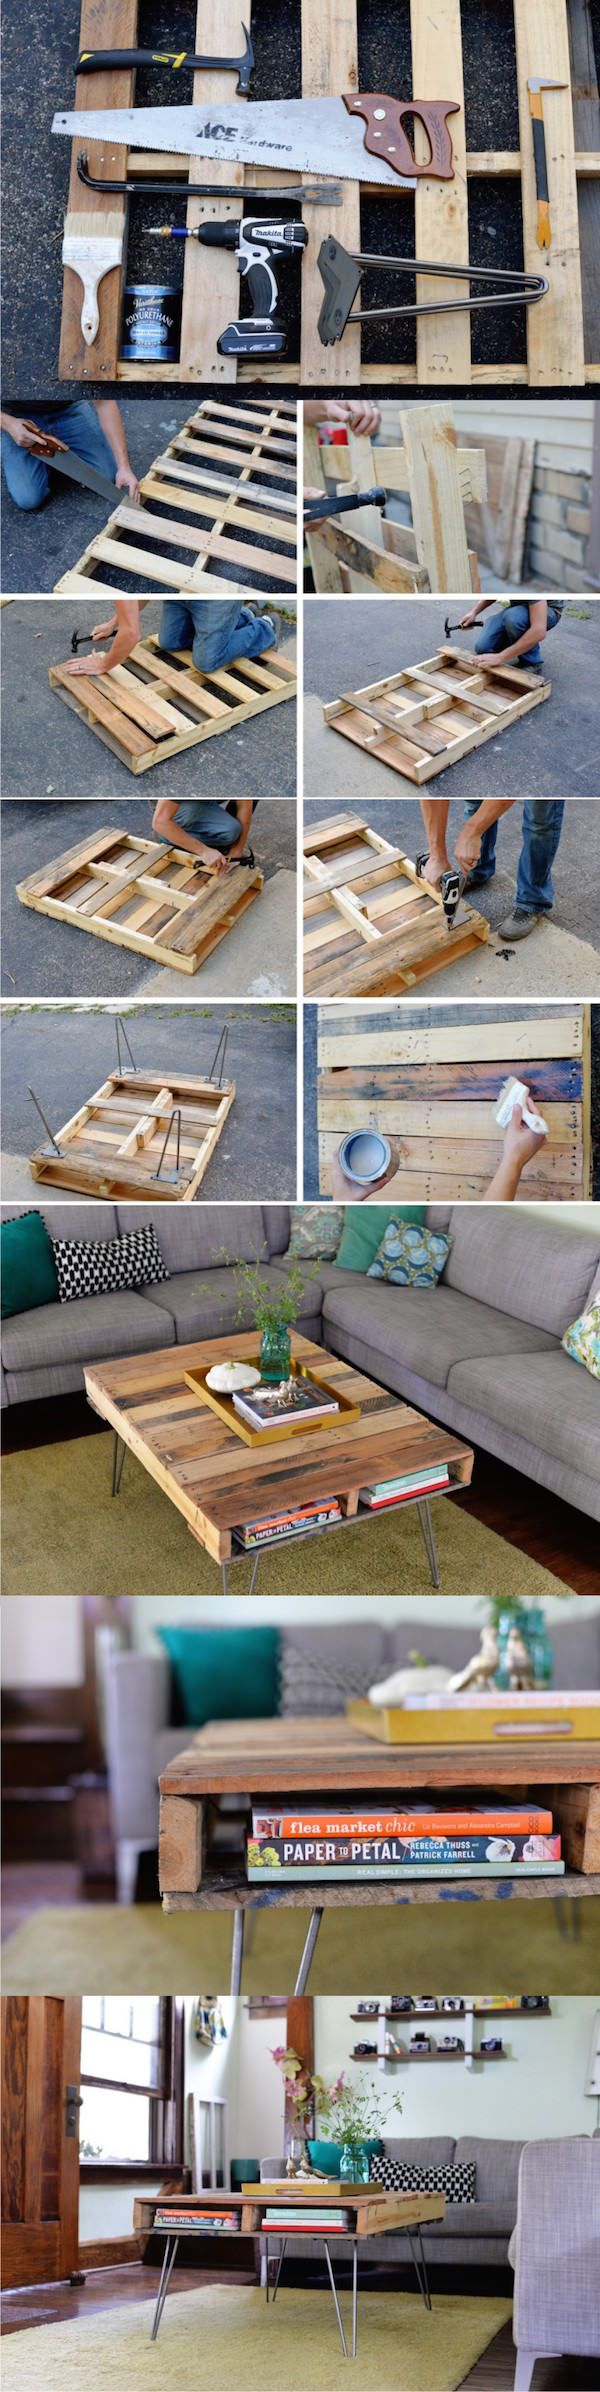 DIY-pallet-coffee-table. Mesa fácil de realizar